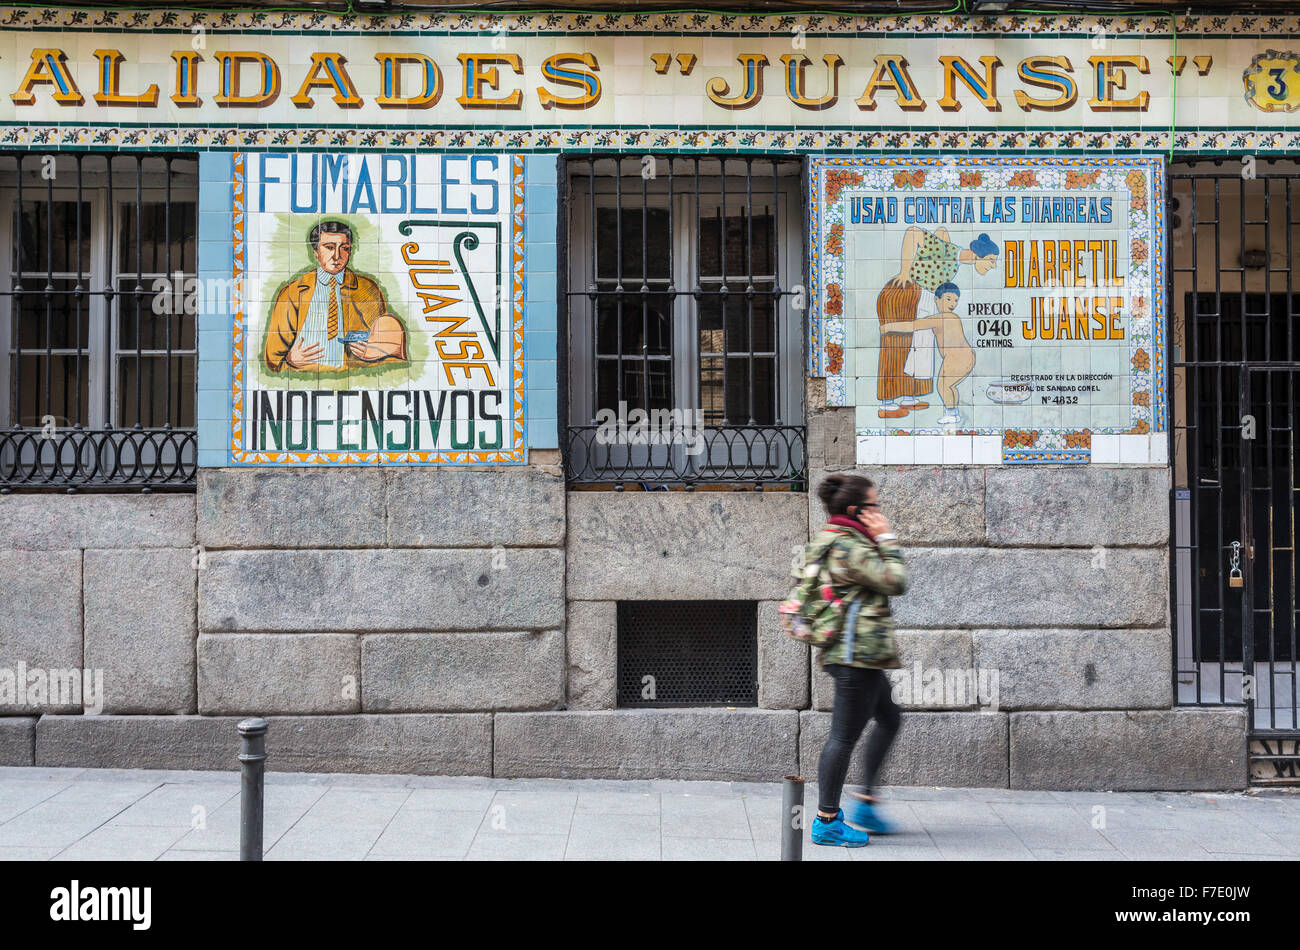 Old tiled advertising on a chemist shop in the Malasana disrict, central Madrid, Spain - Stock Image